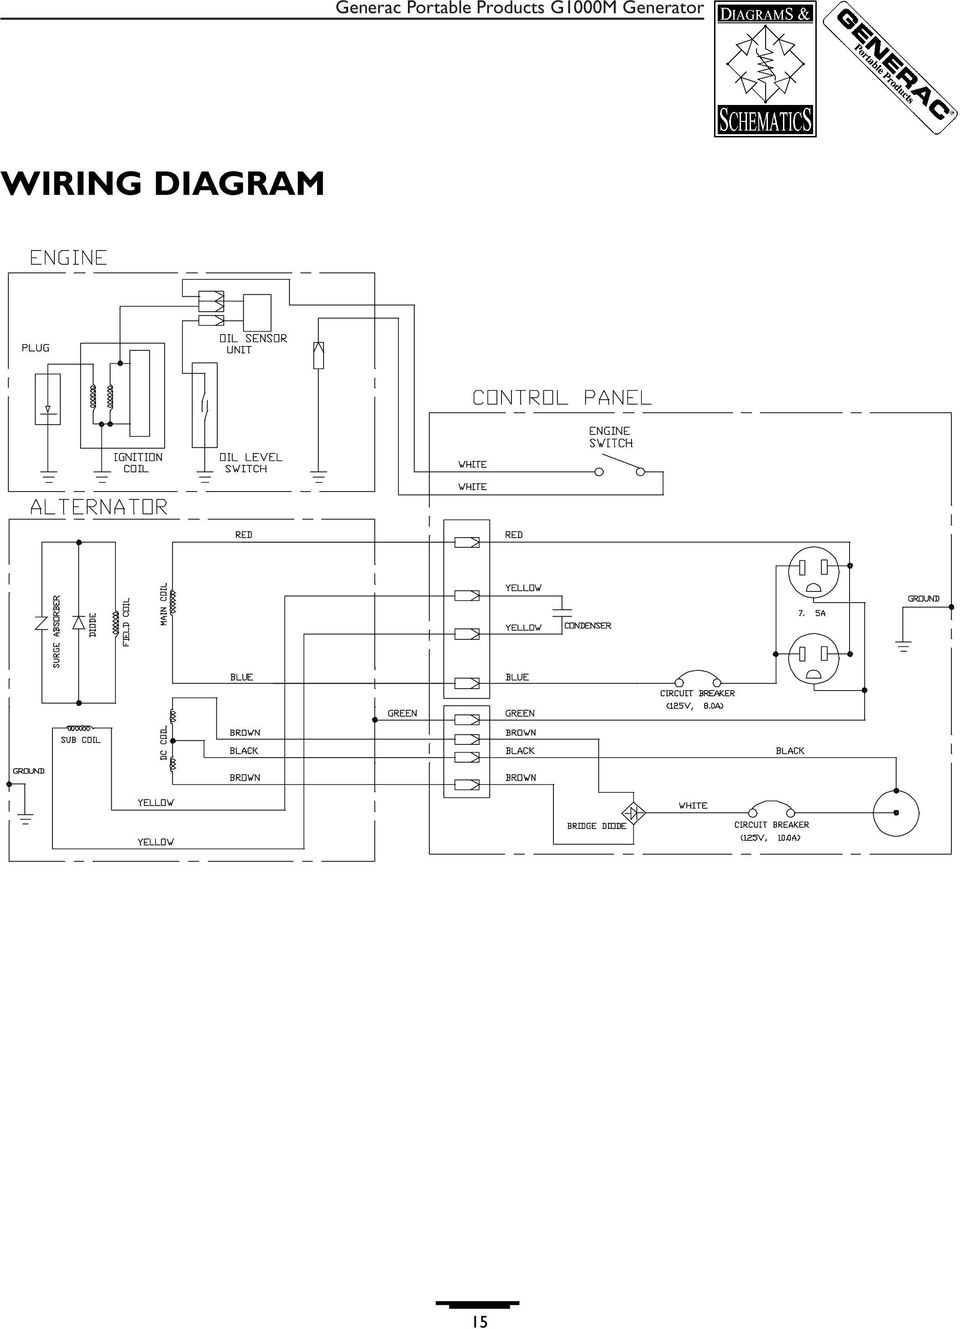 Portable Generator Owner S Manual Model No 1000 Watt Ac Plug Wiring Diagram Hecho Together With On 50 Amp 125v 16 Exploded View And Parts List Main Unit Item Part Qty Description 1 Nsp Eng Mitsub 24hp Rotor Brg Stator Lead Green Bushing Wire G790b Rbc